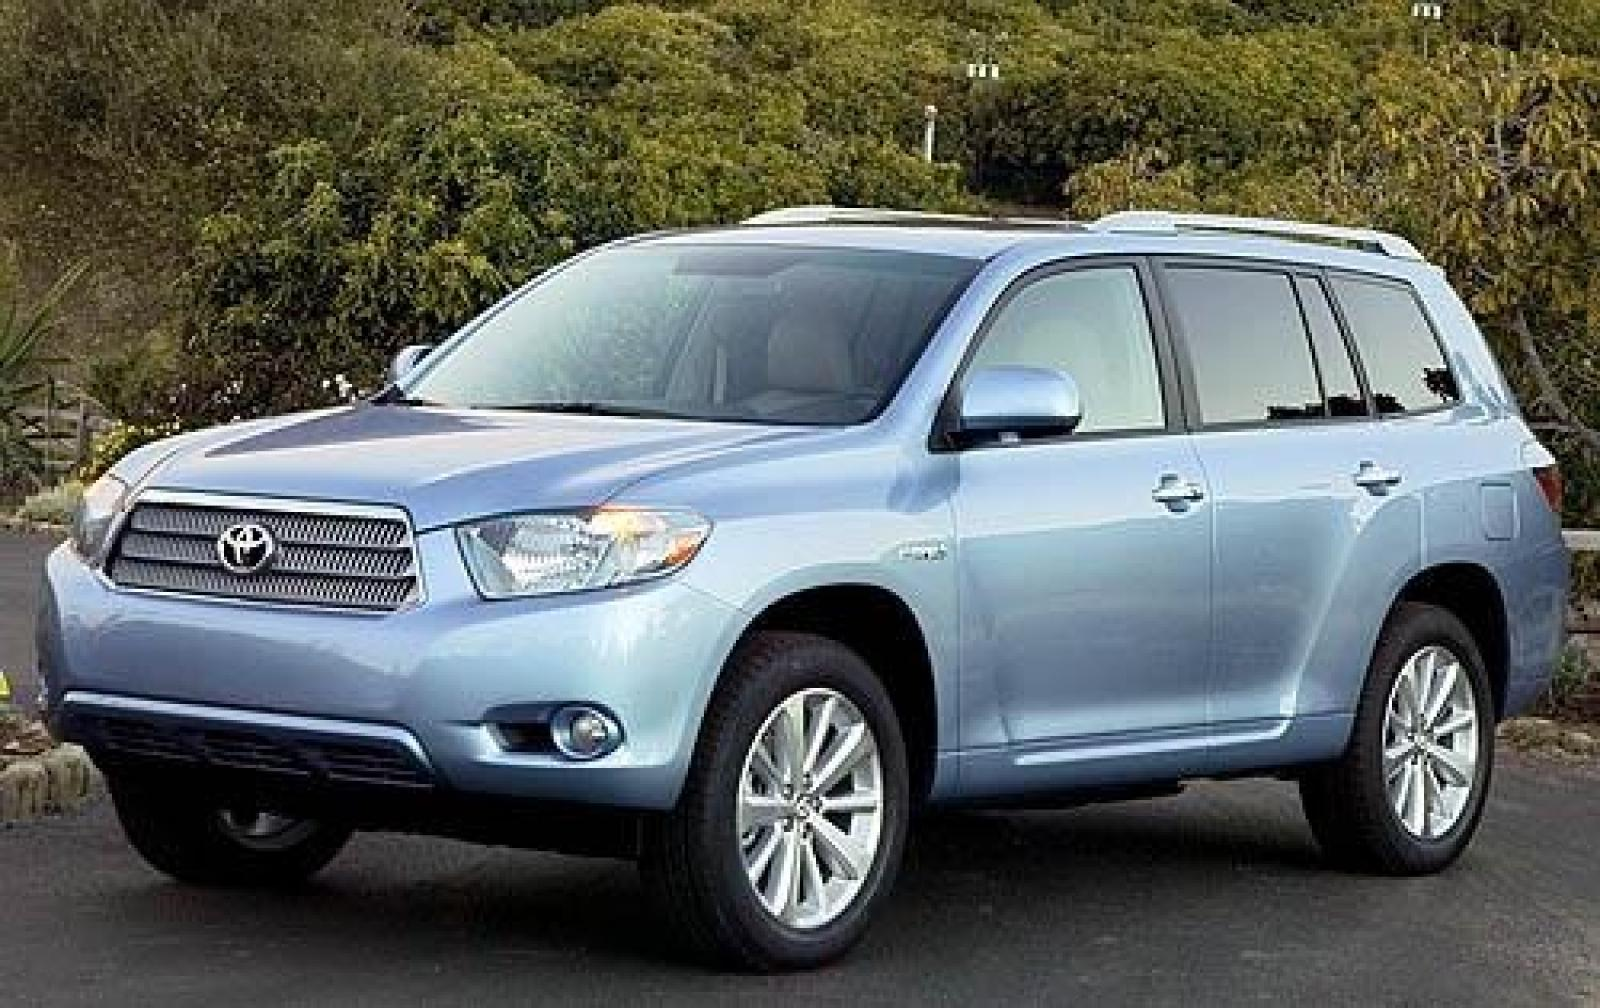 2010 toyota highlander hybrid information and photos zombiedrive. Black Bedroom Furniture Sets. Home Design Ideas